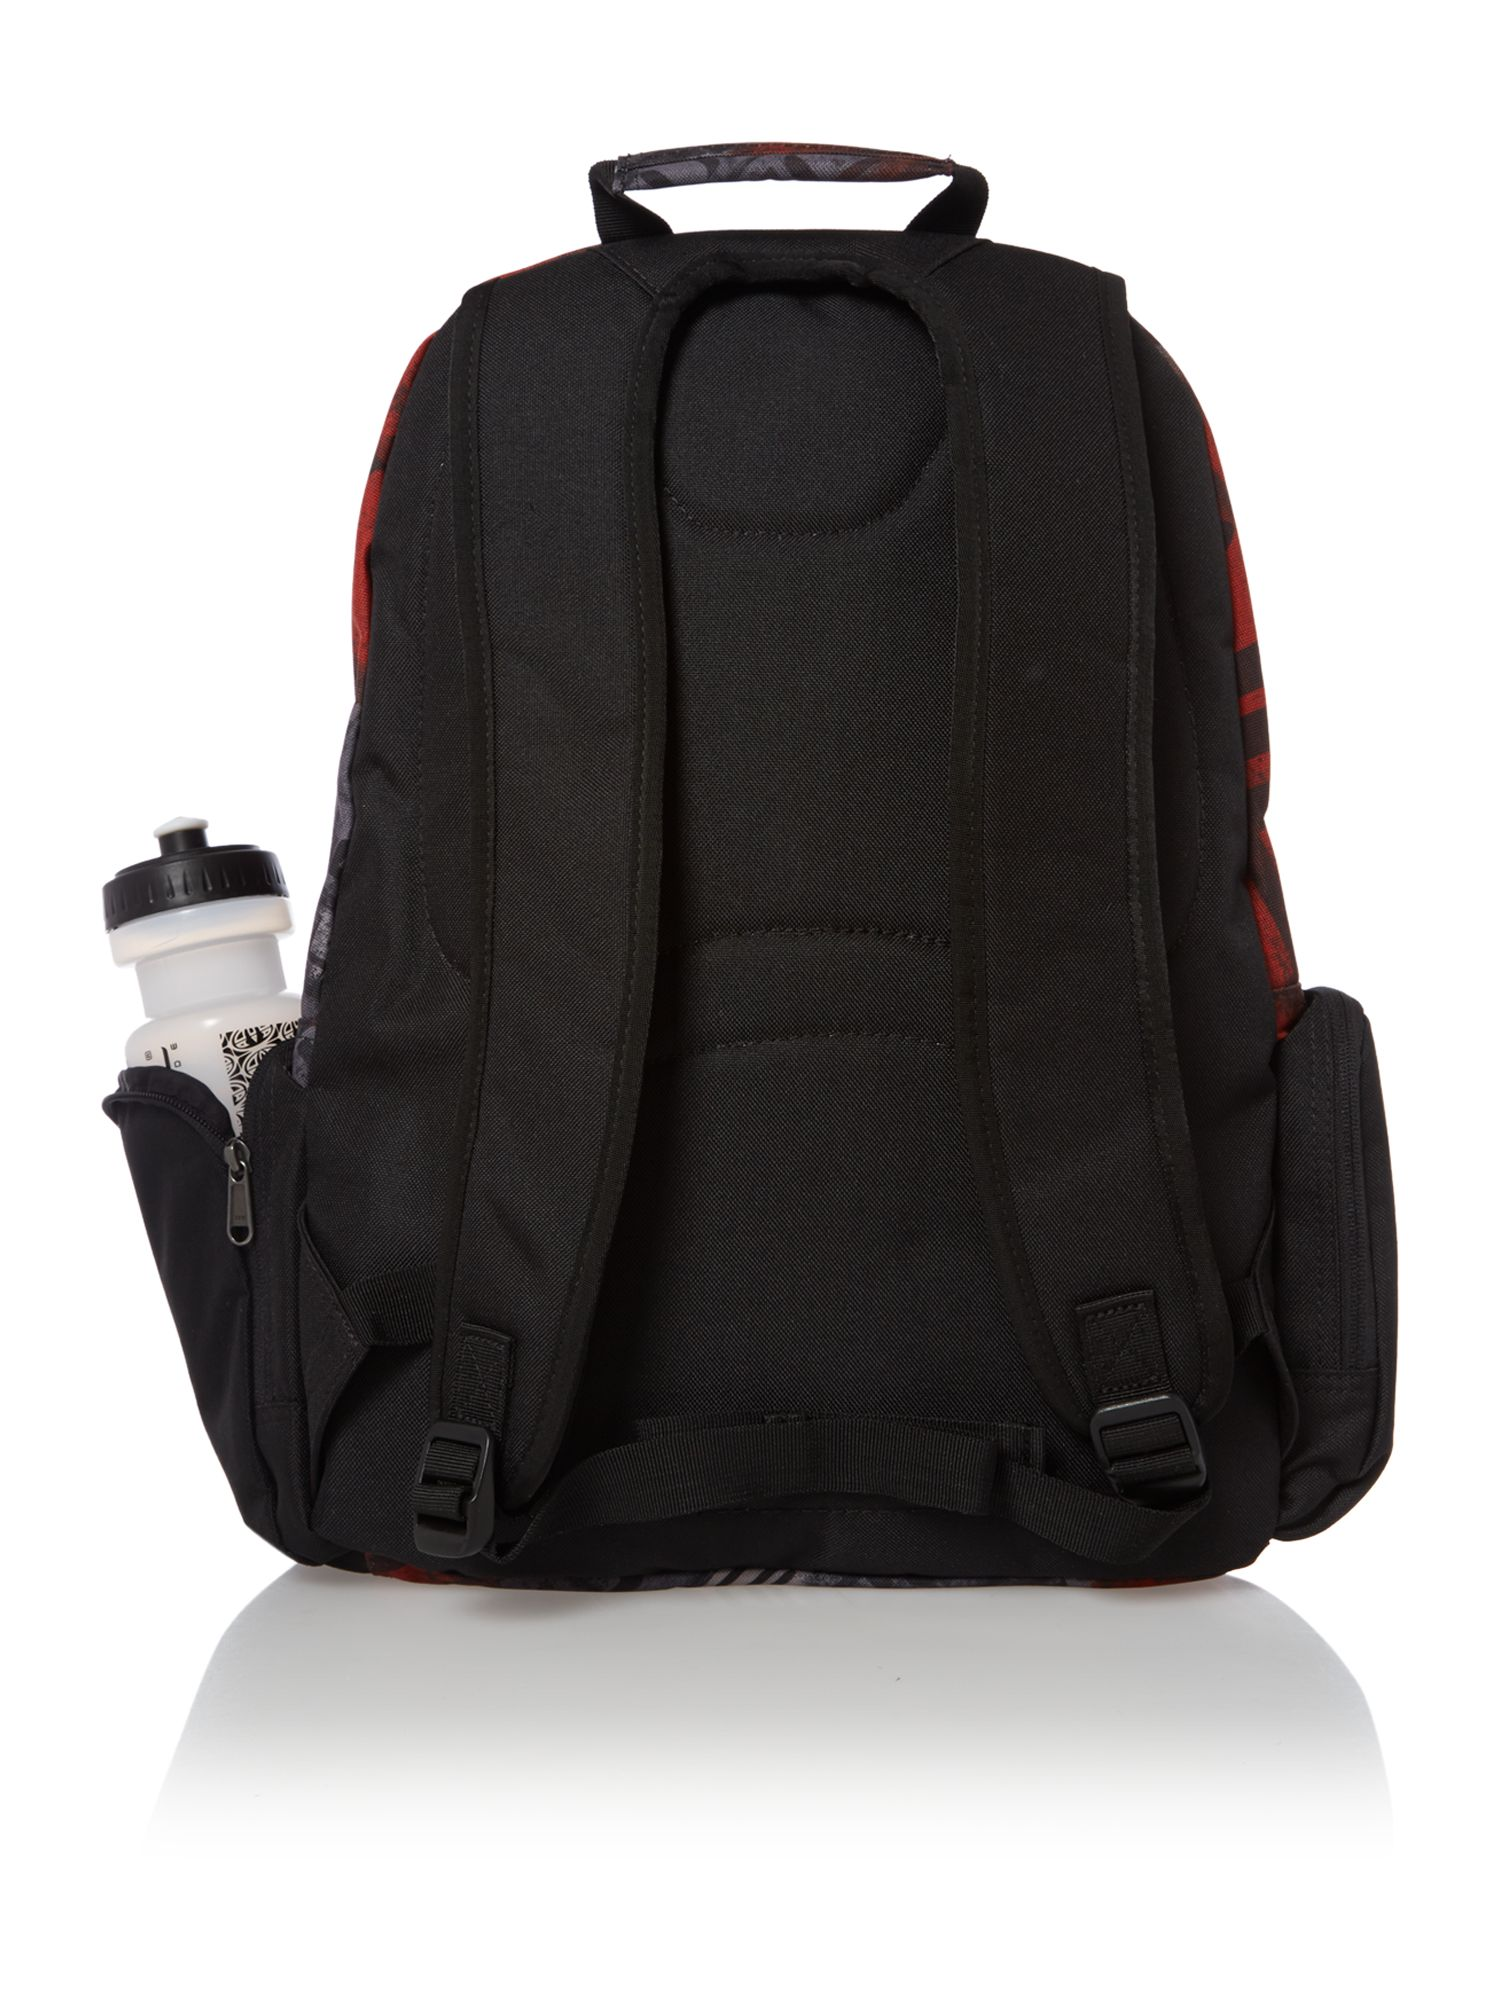 Flagle deluxe backpack with water bottle